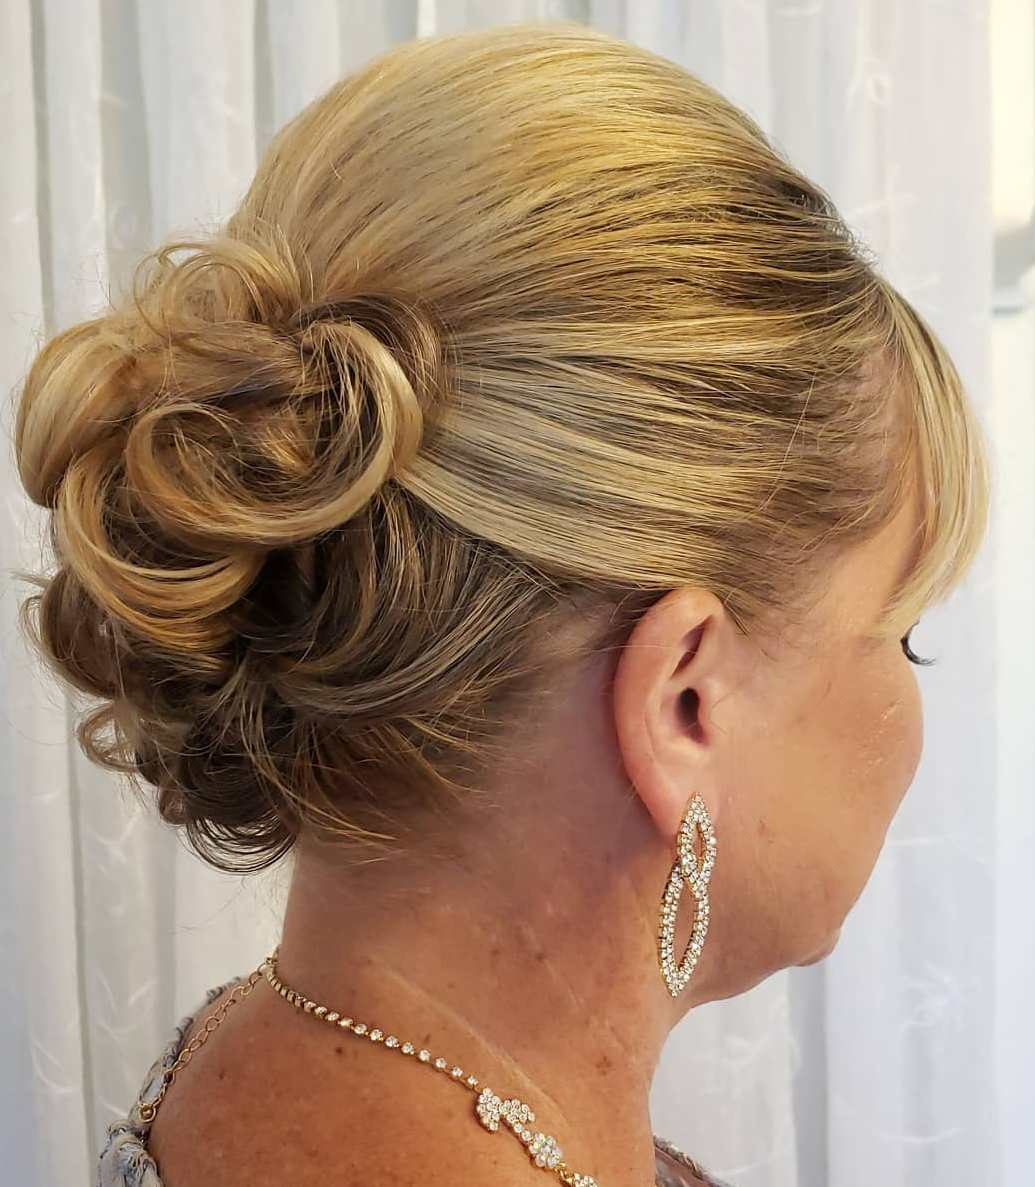 Curly Updo for Medium Length Hair